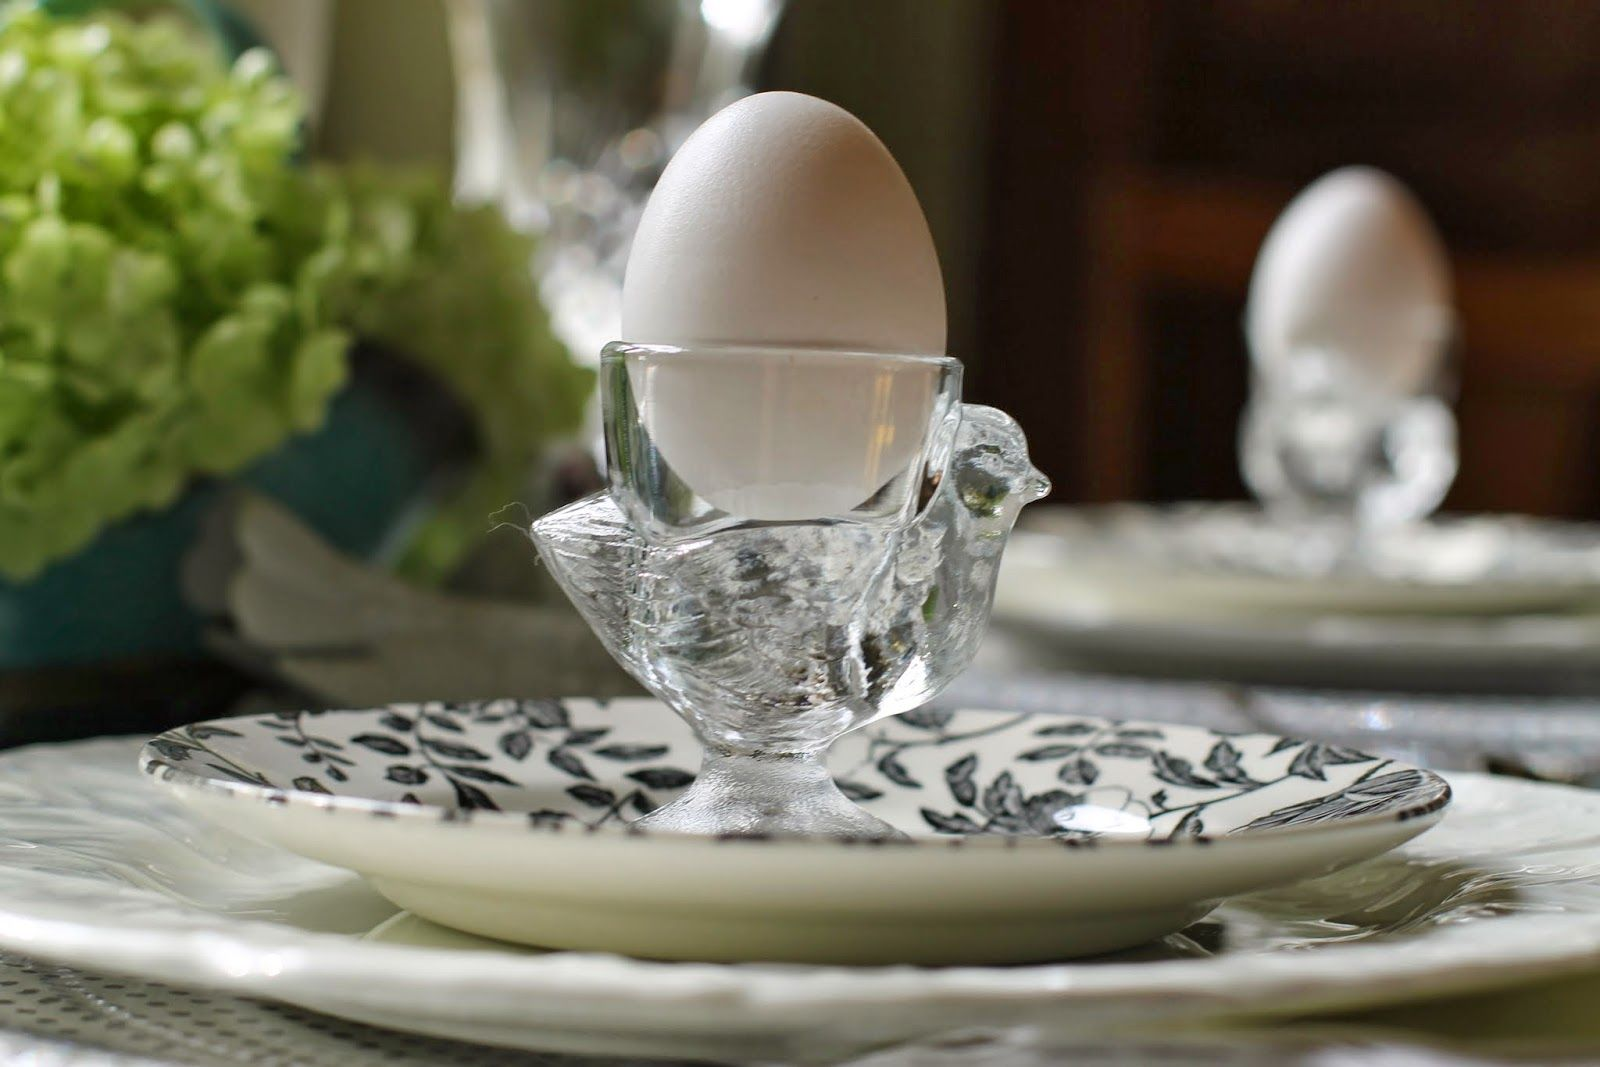 Hidden art of homemaking darling crystal egg cup tablescape